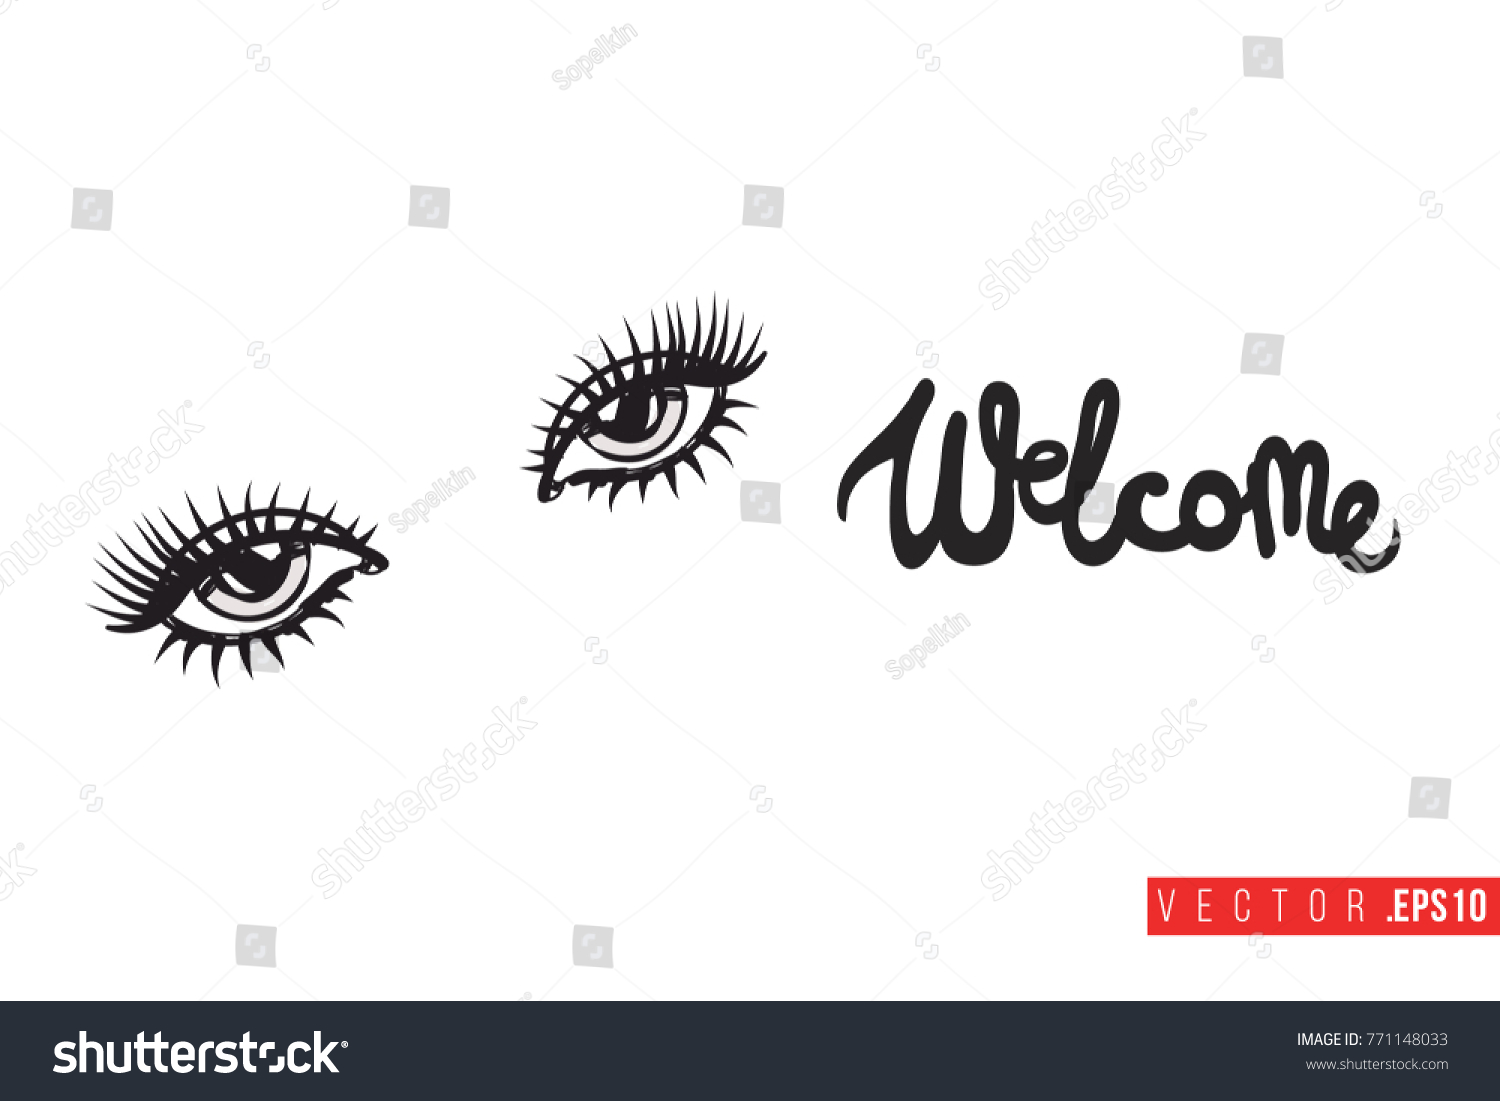 Vector woman eyes motivational text welcome stock vector 771148033 vector woman eyes with motivational text welcome fashion accessory illustration in glamour style for buycottarizona Gallery